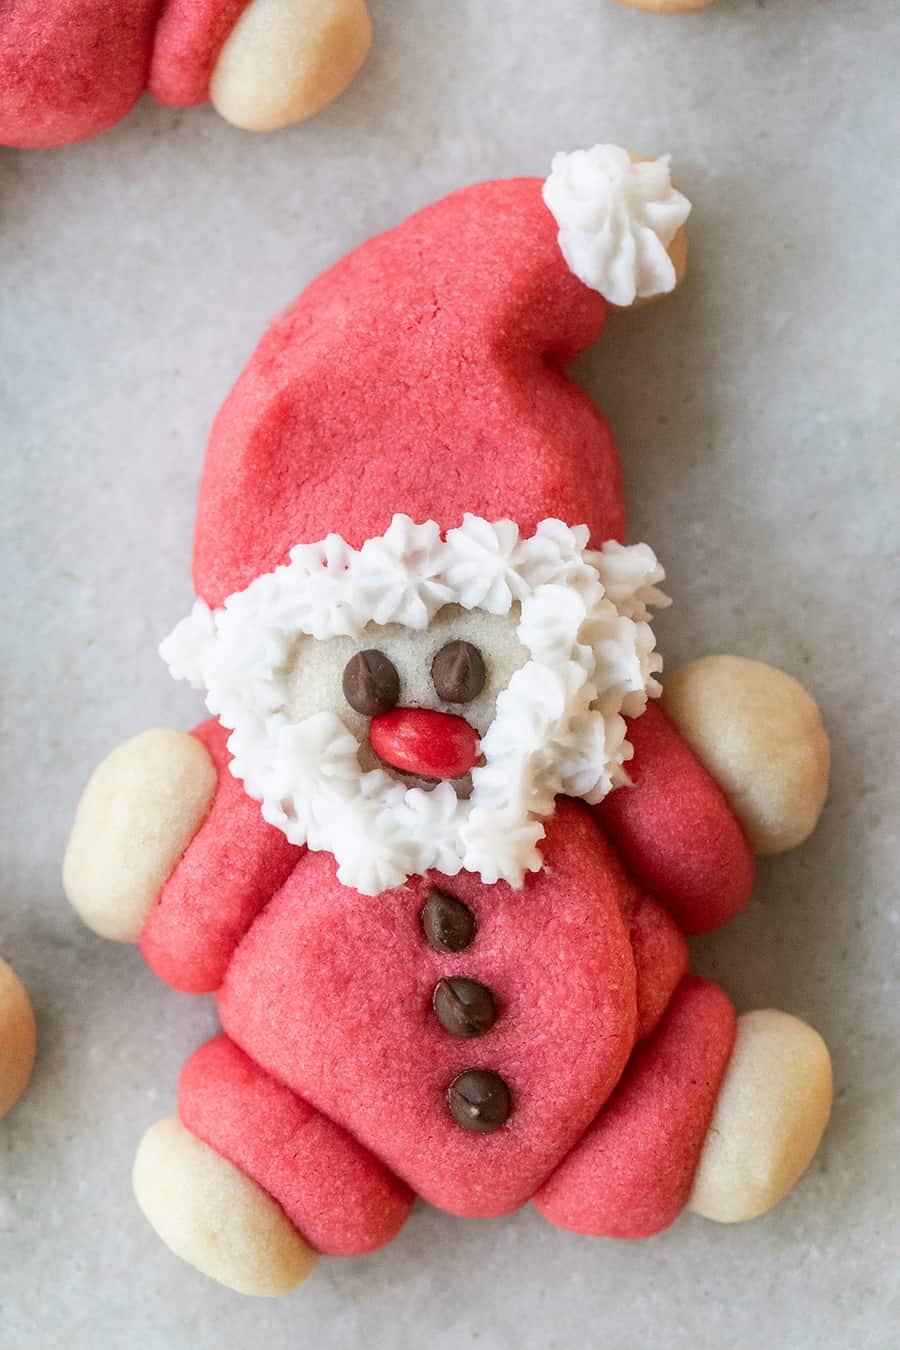 Santa Cookie shaped at santa made with chocolate chip eyes, red hot nose and fluffy white frosting for a beard.